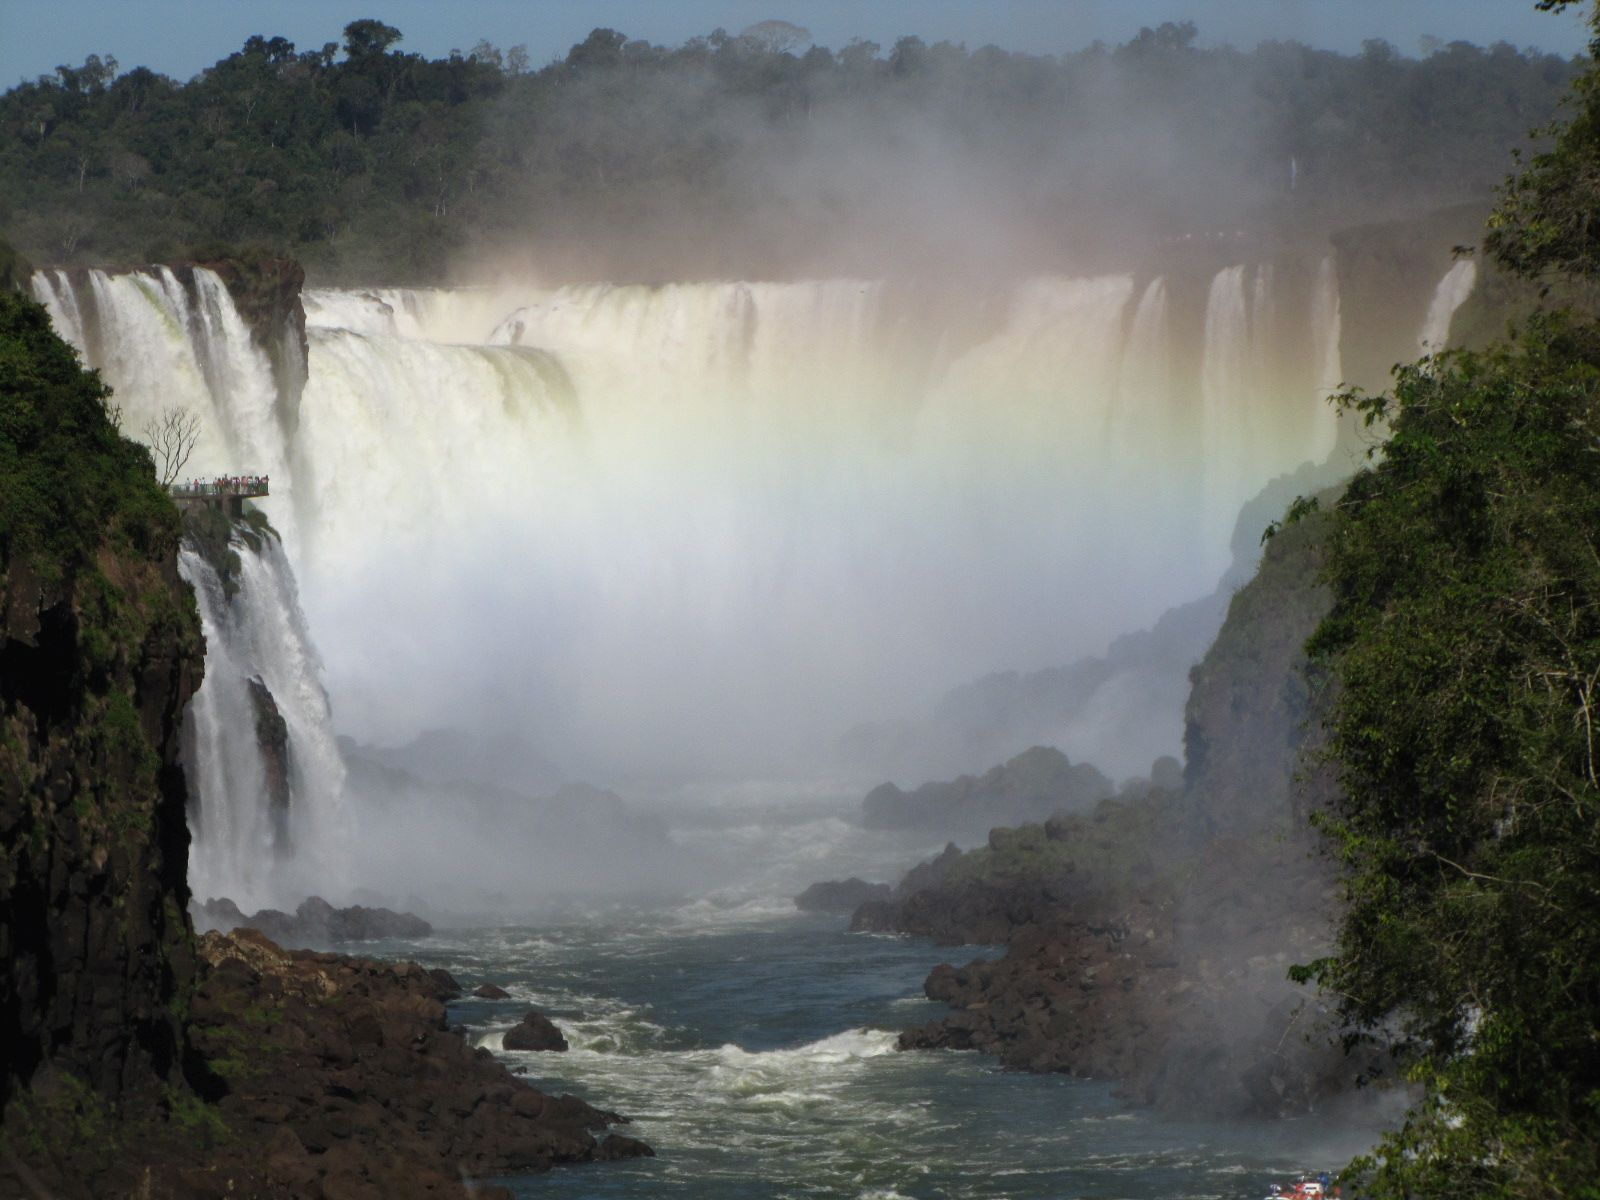 Click to enlarge image Iguazupano1.jpg